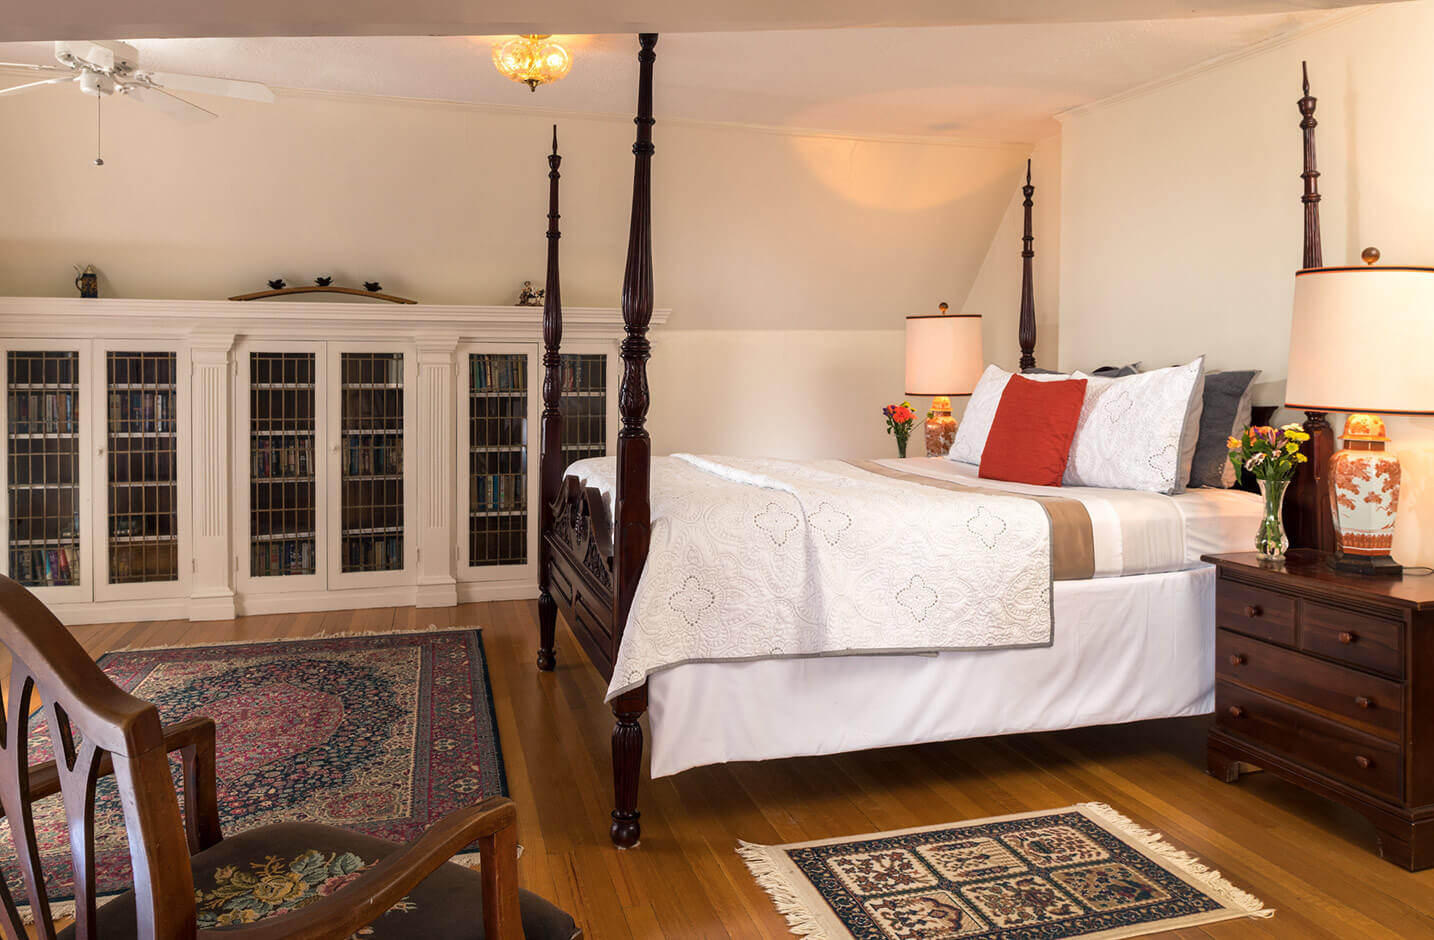 Bed and Breakfast in the Finger Lakes - Room 10 bed